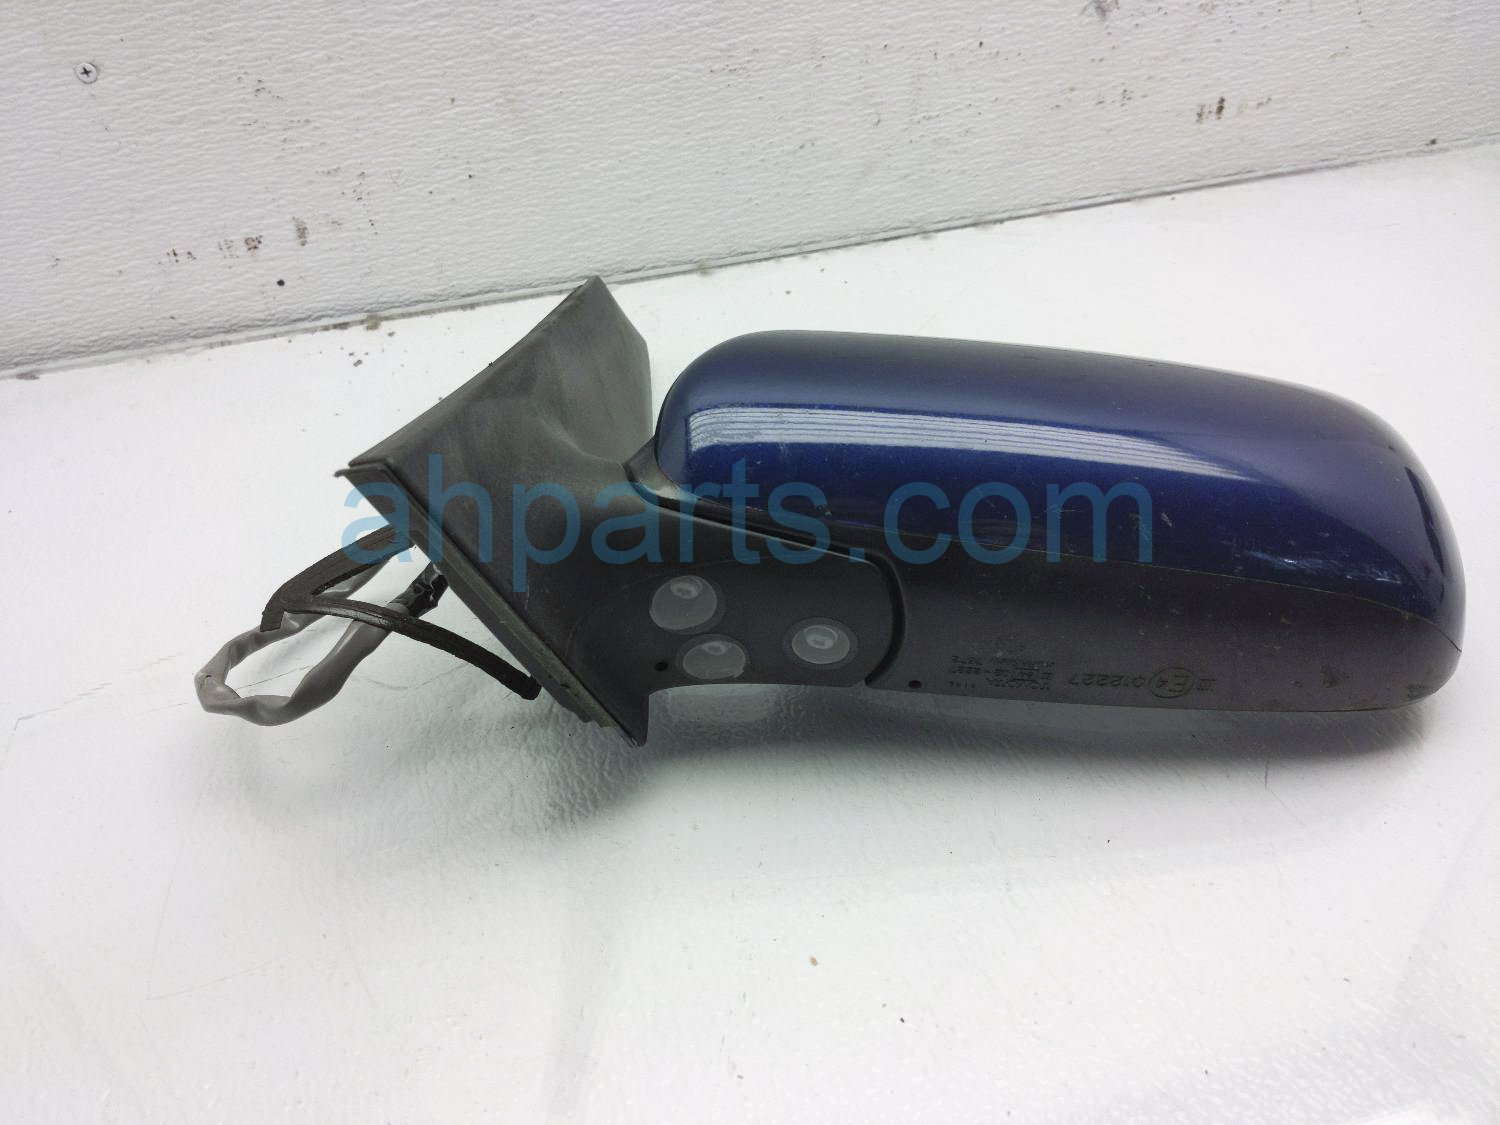 2008 Toyota Prius Rear Driver Side View Mirror   Blue   Scratch 87940 47101 Replacement